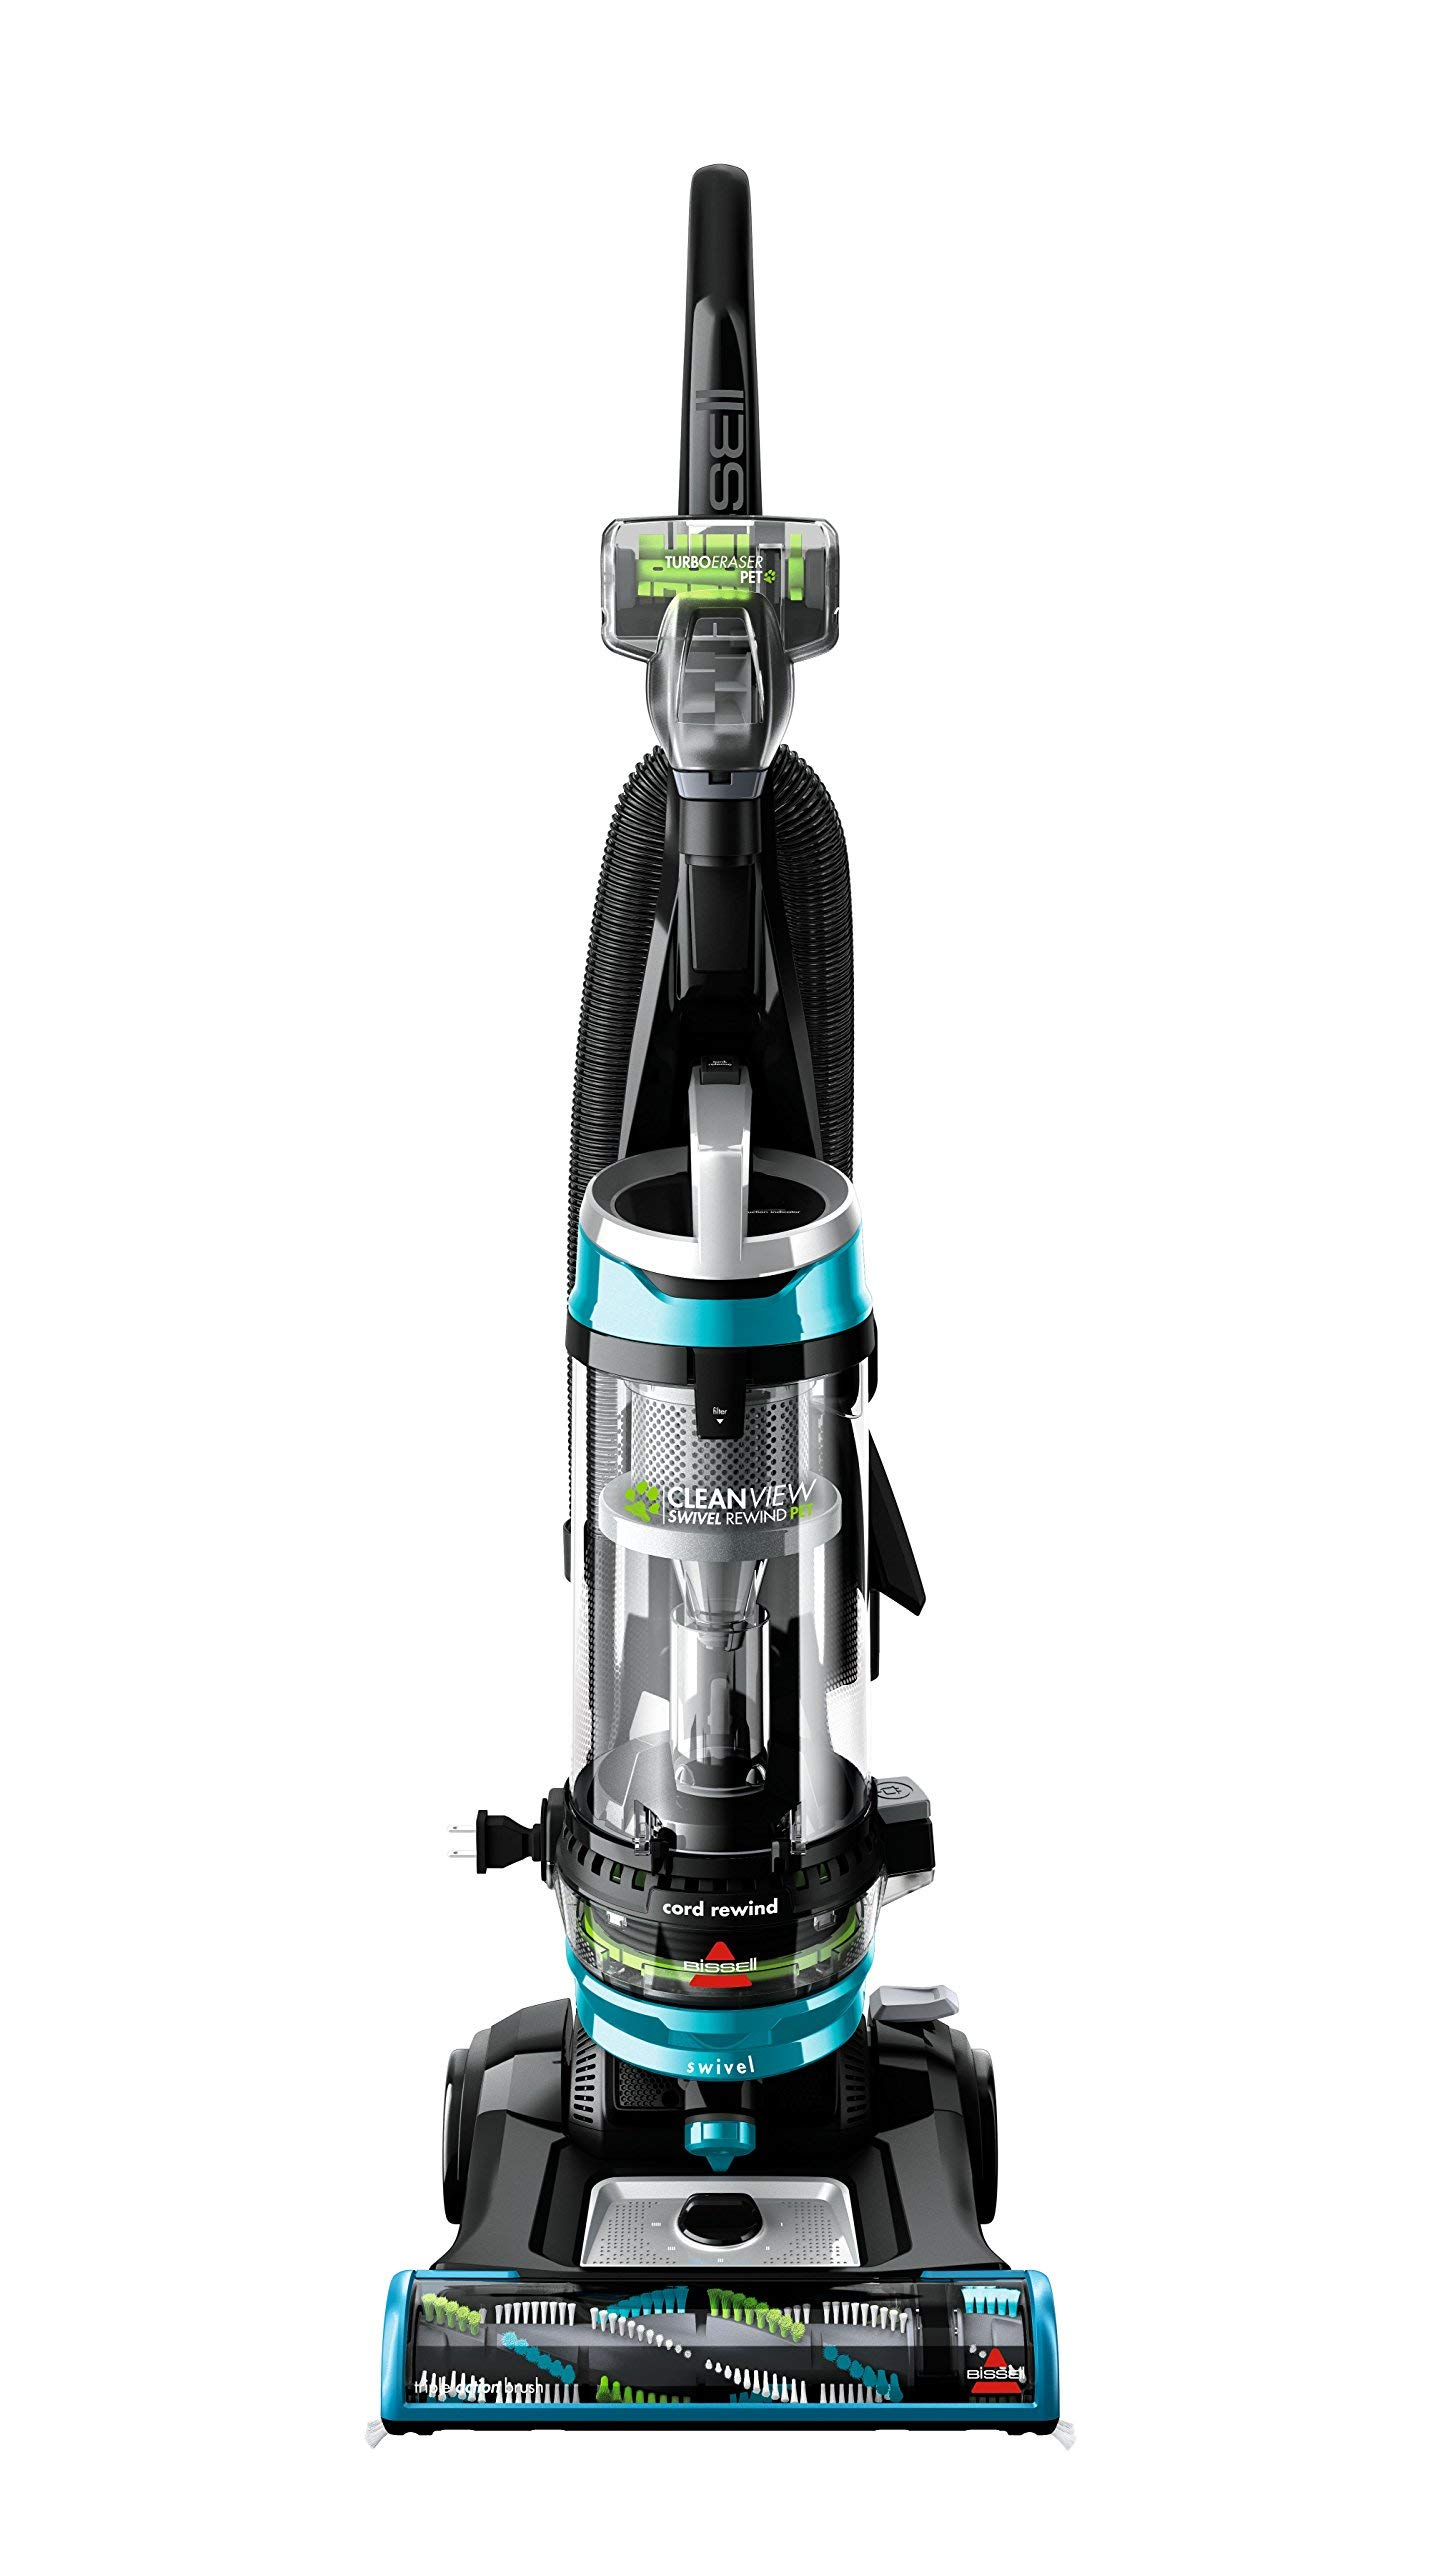 BISSELL Cleanview Swivel Rewind Pet Upright Bagless Vacuum Cleaner (Renewed) by Bissell